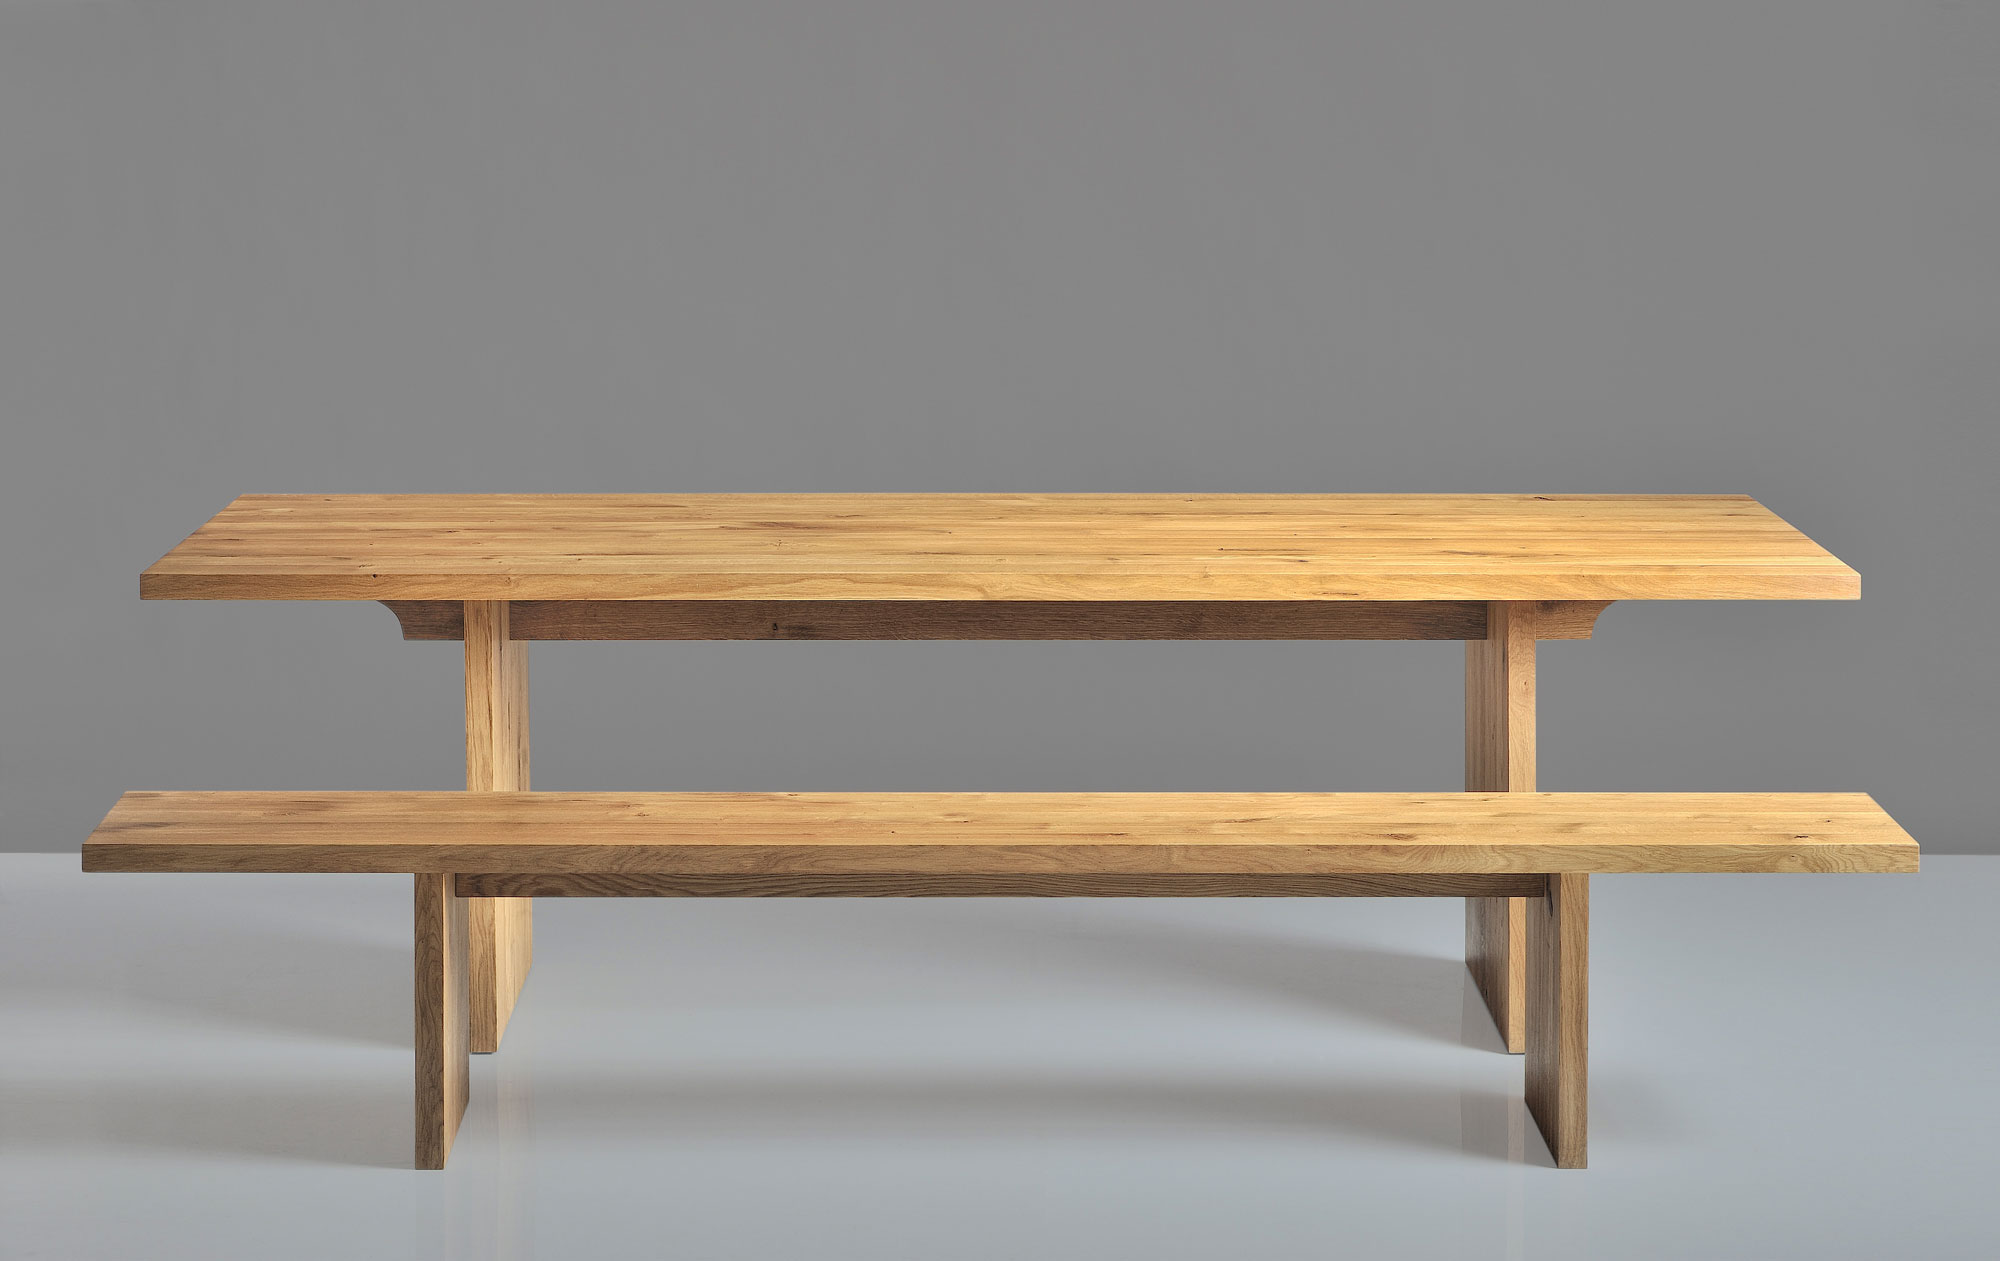 Solid Wood Bench SAGA 1422A custom made in solid wood by vitamin design